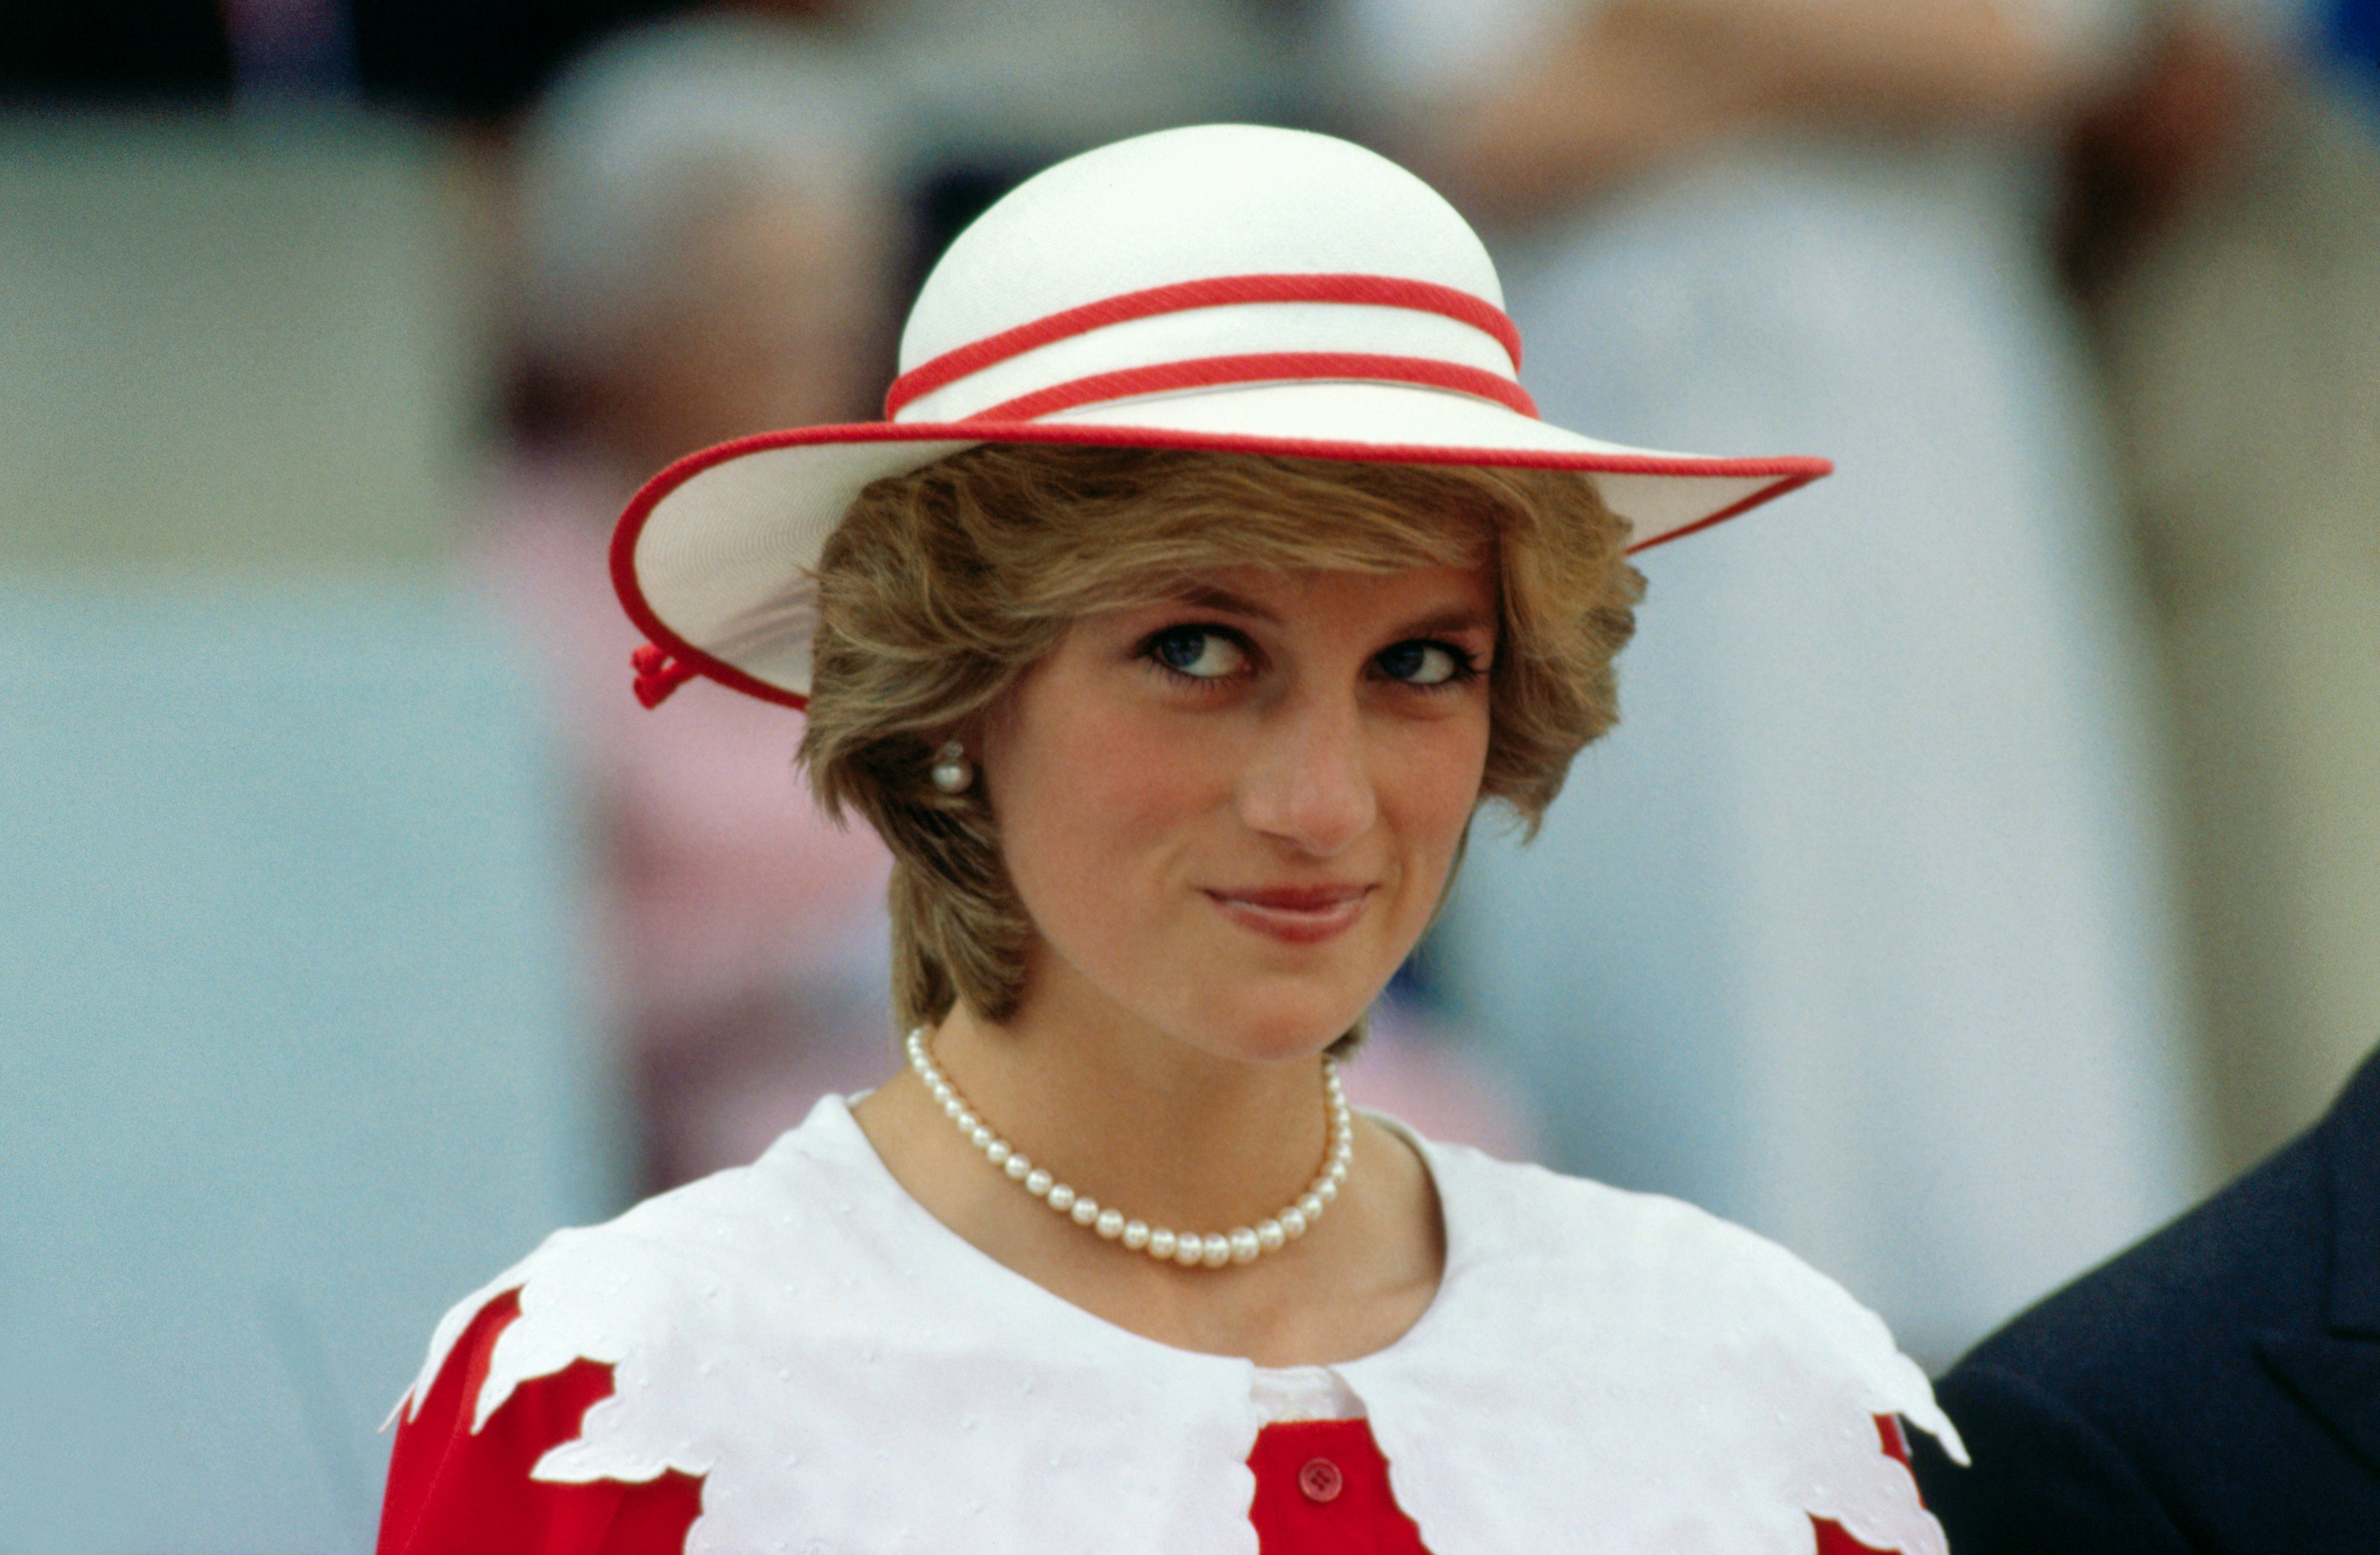 Princess Diana was known for an especially thoughtful habit. A recent study shows why you should adopt it, too.